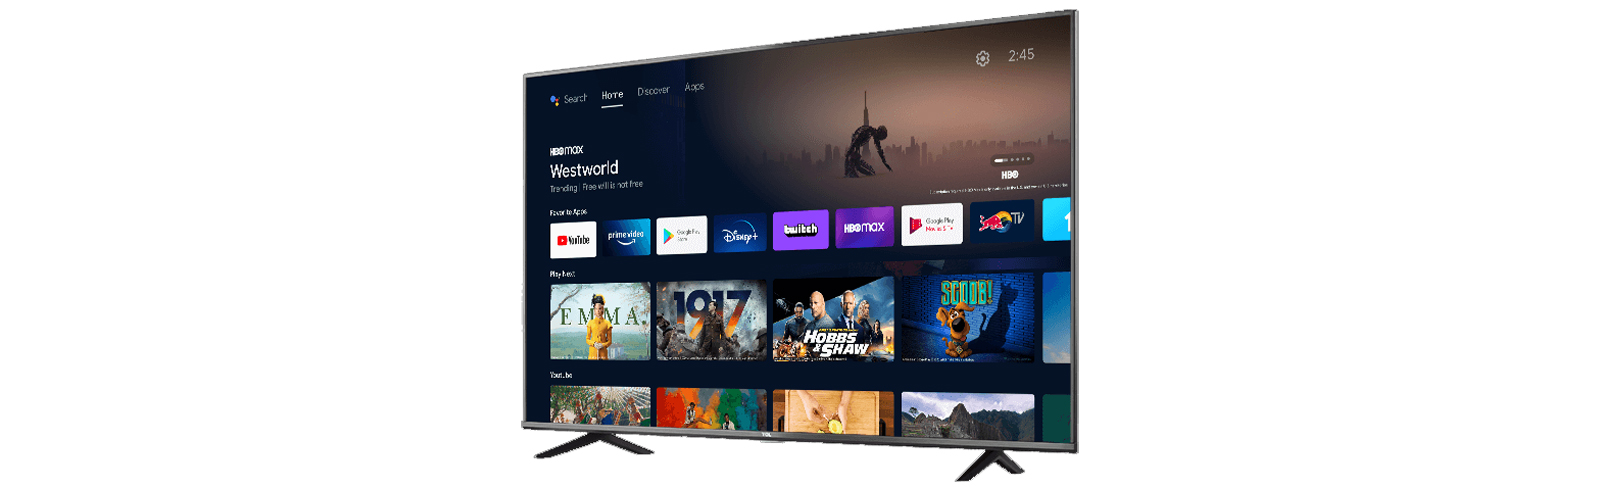 The first model from the TCL S430 series (TCL 70S430) is launched in the USA